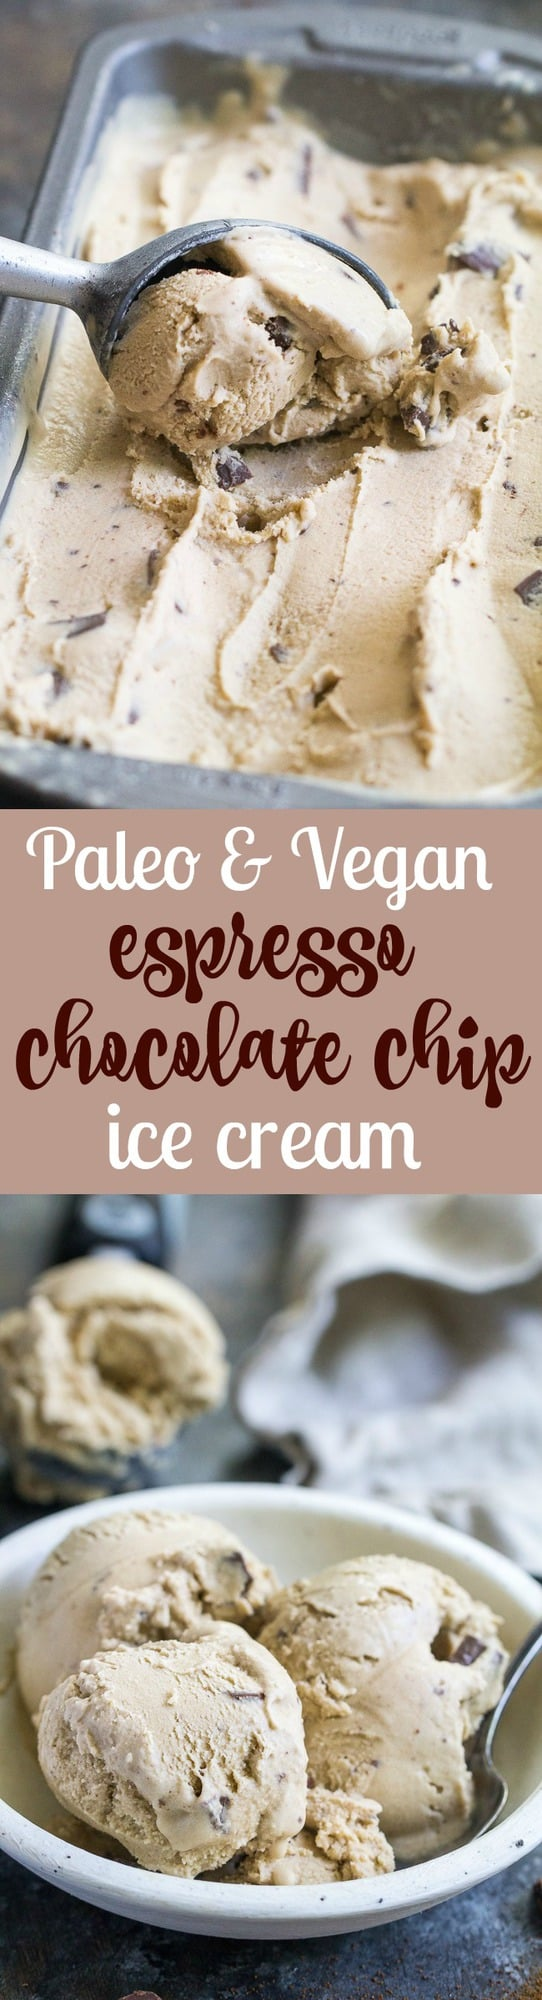 This easy dairy-free, paleo and vegan espresso chocolate chip ice cream has the perfect balance of coffee flavor and dark chocolate chips. The ingredients are quickly blended and then churned for a rich, creamy and healthy frozen dessert!